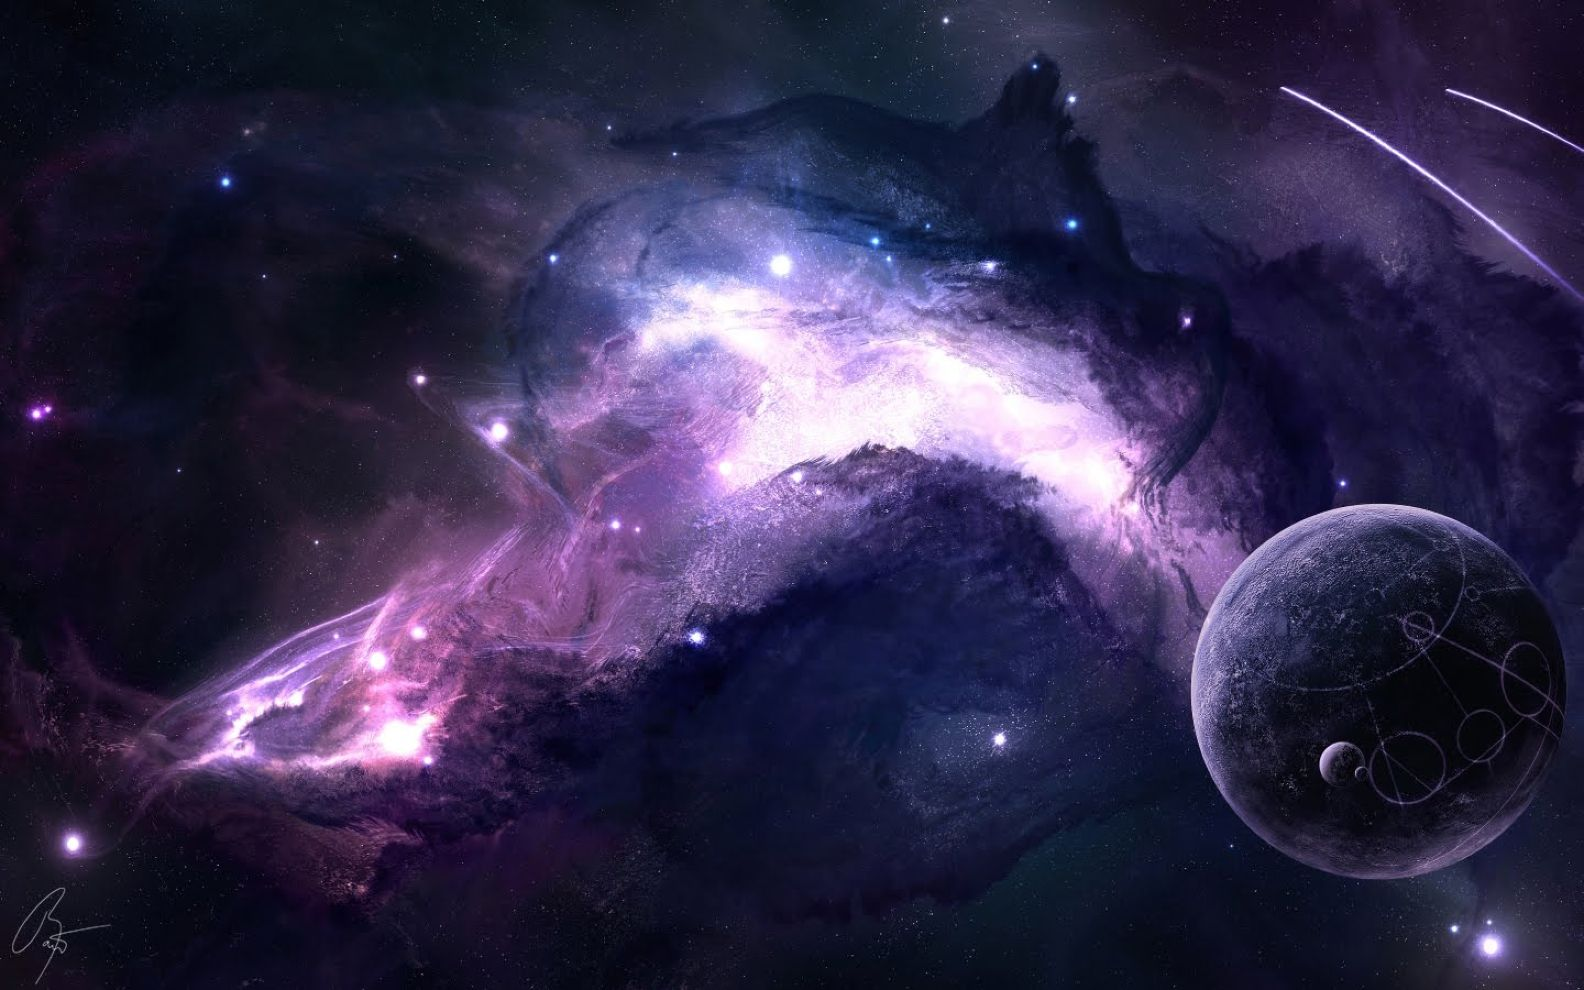 Abstract Cool 3D Space Hd Wallpaper